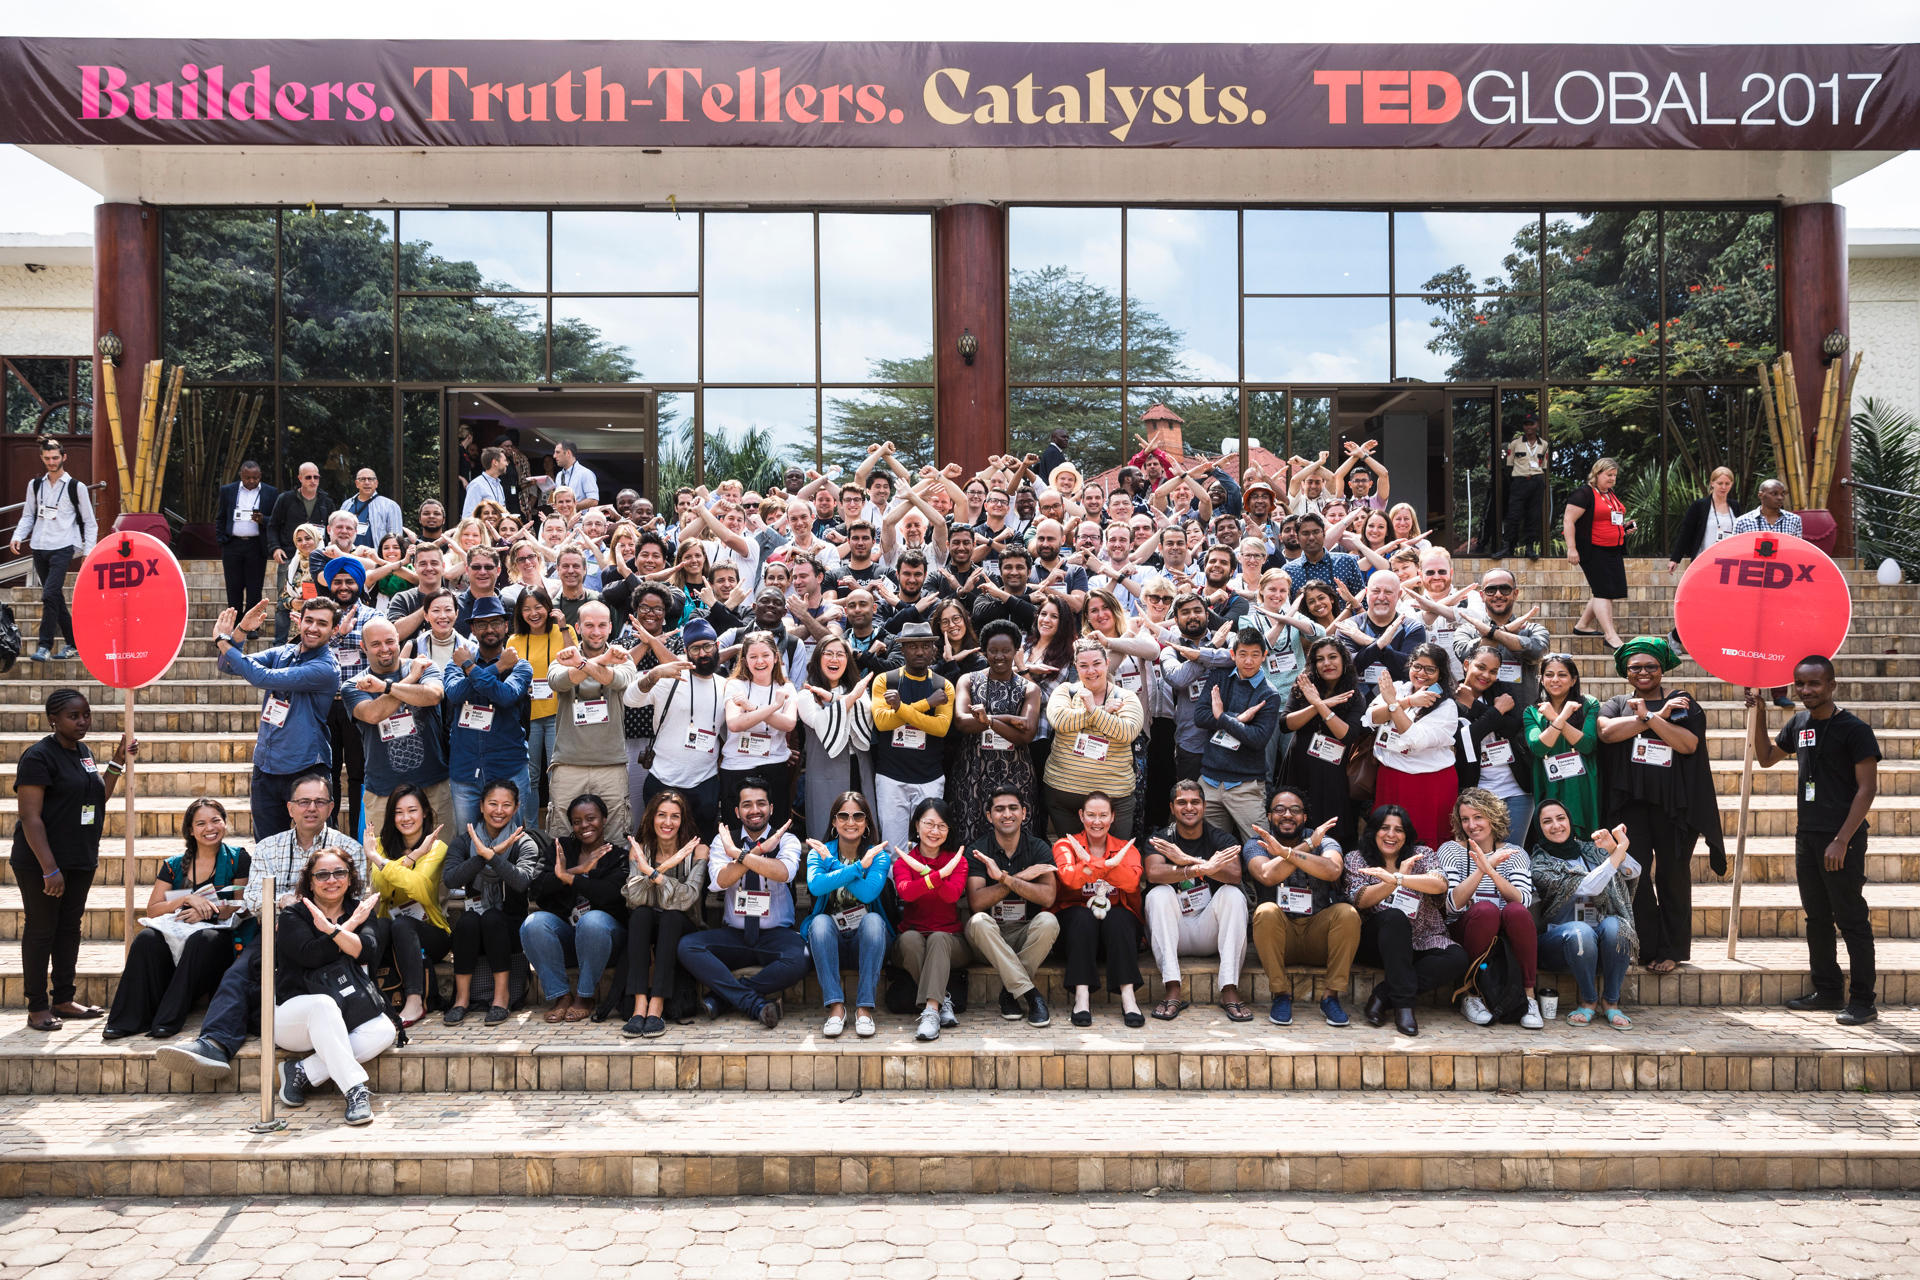 TEDx Group Photo at TEDGlobal 2017 - Builders, Truth Tellers, Catalysts - August 27-30, 2017, Arusha, Tanzania. Photo: Callie Giovanna / TED